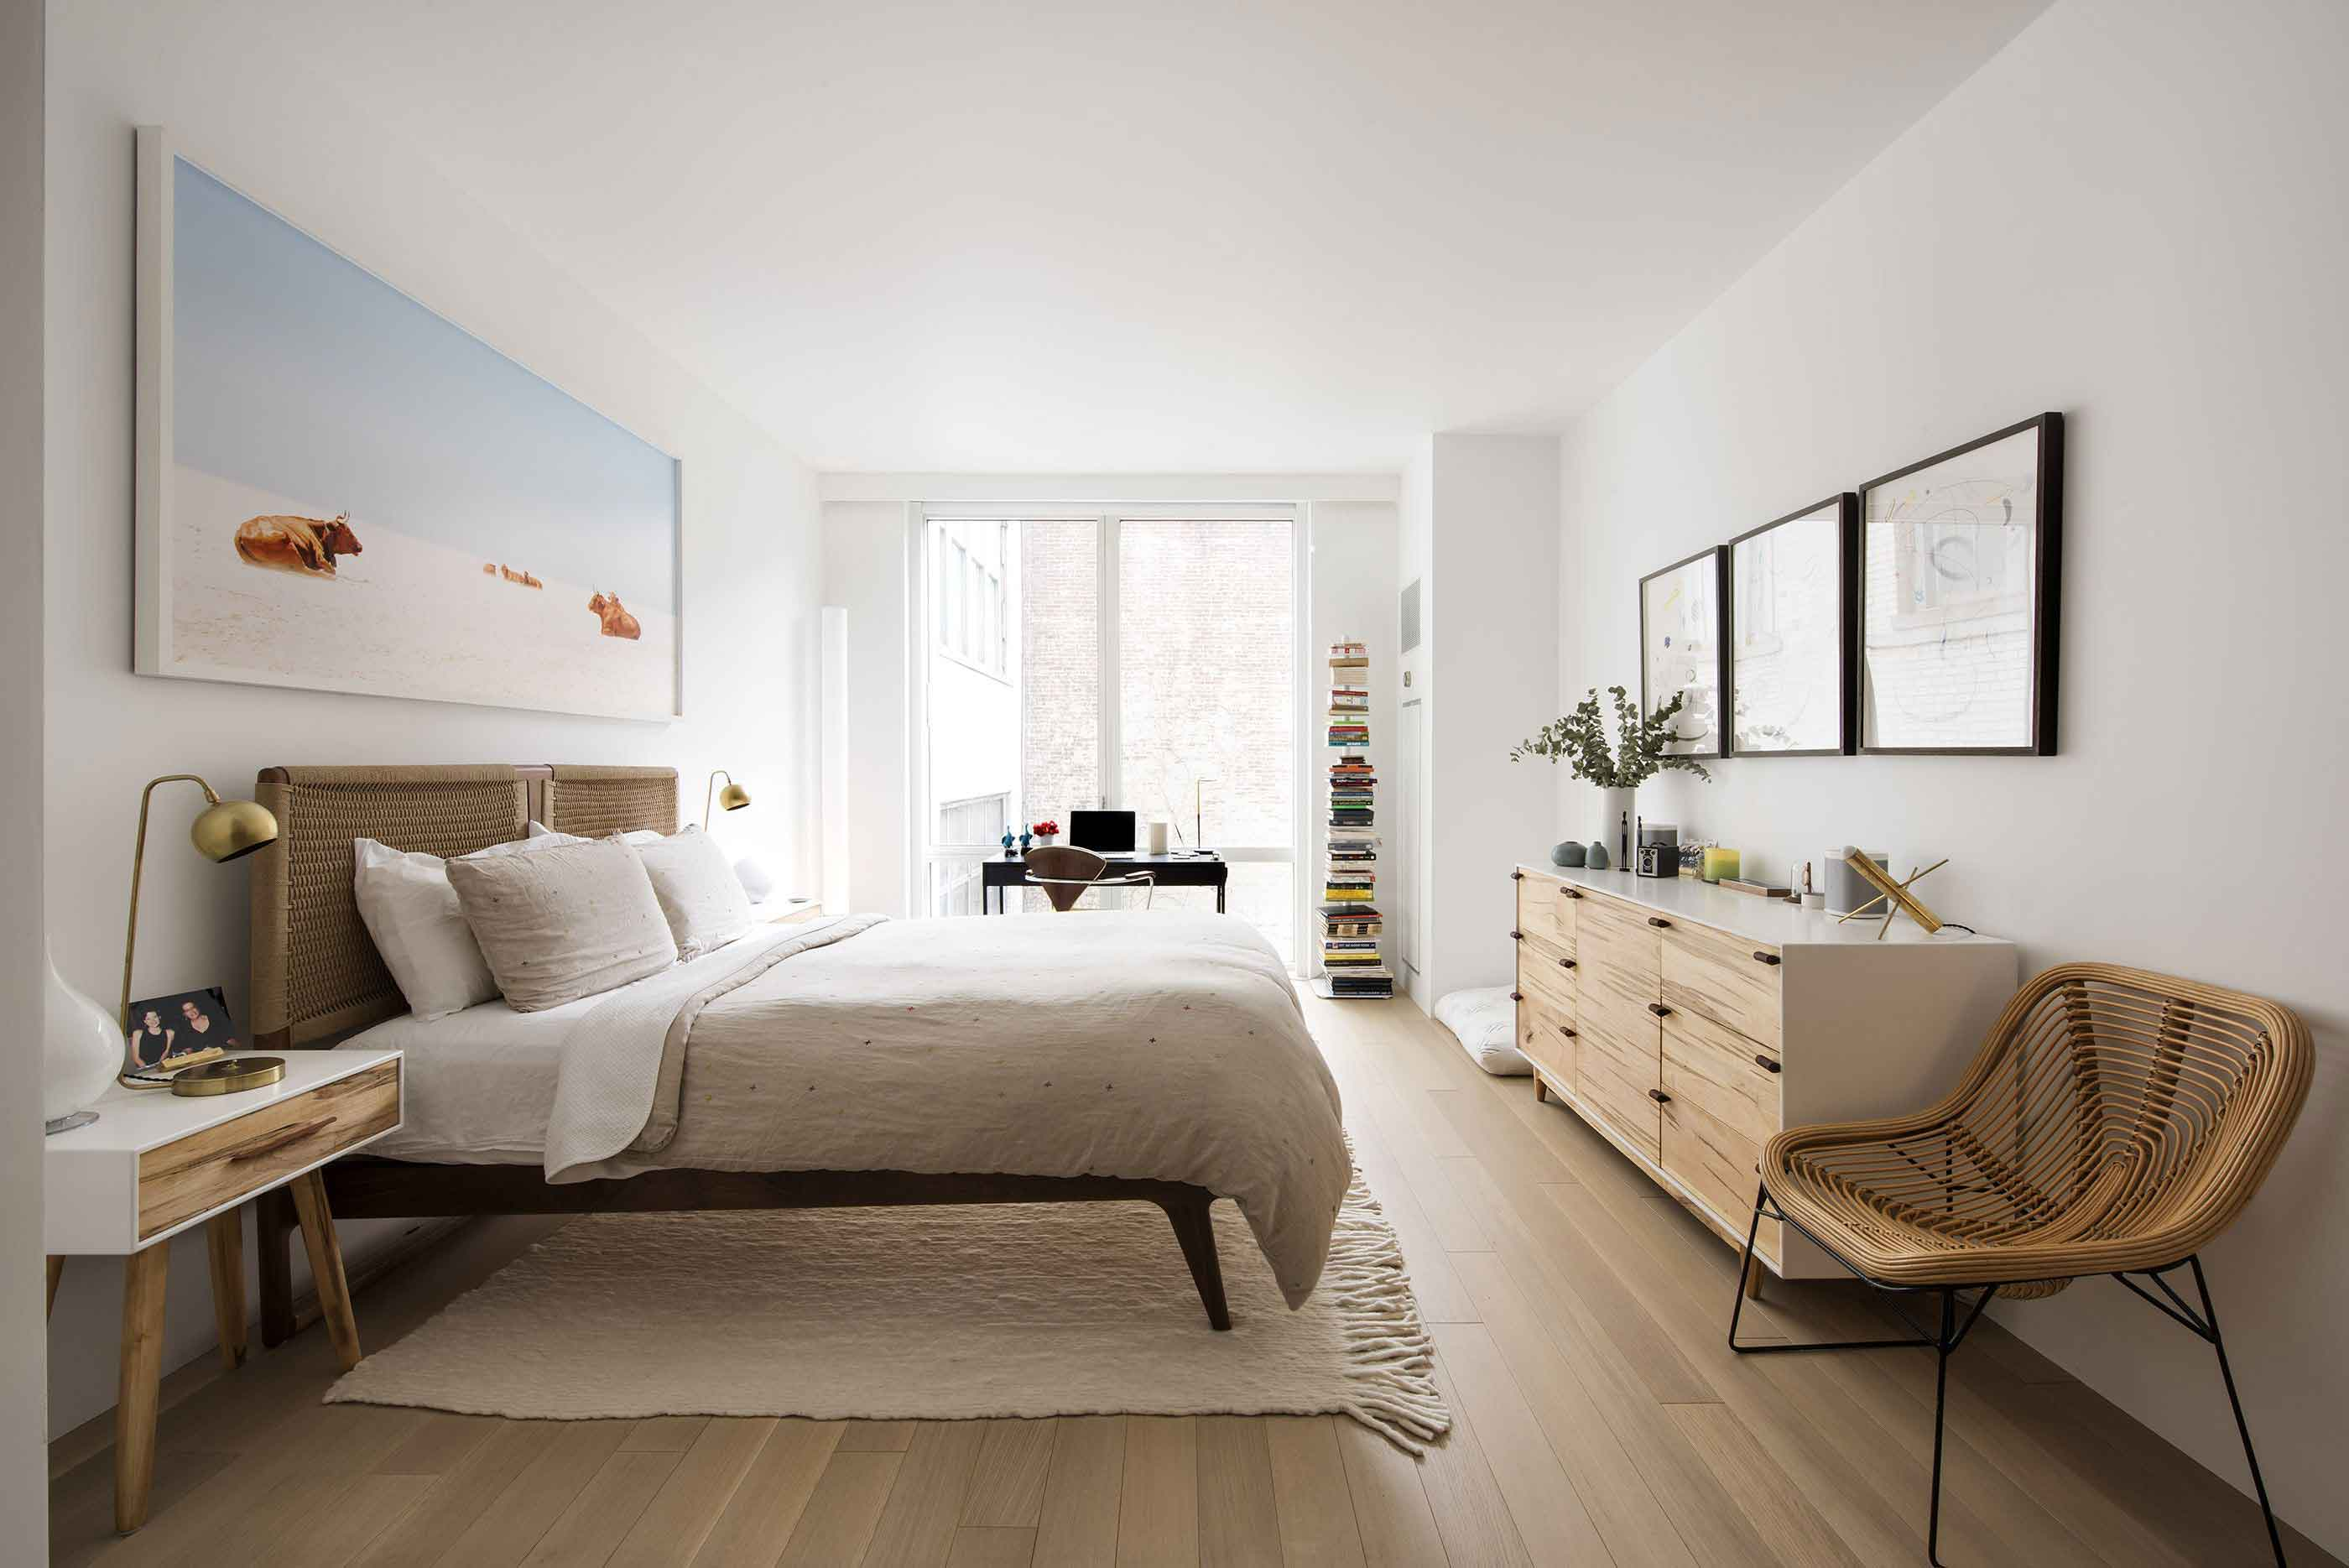 Urban Modern Bedroom Ideas for Your Home on Room Ideas  id=27644